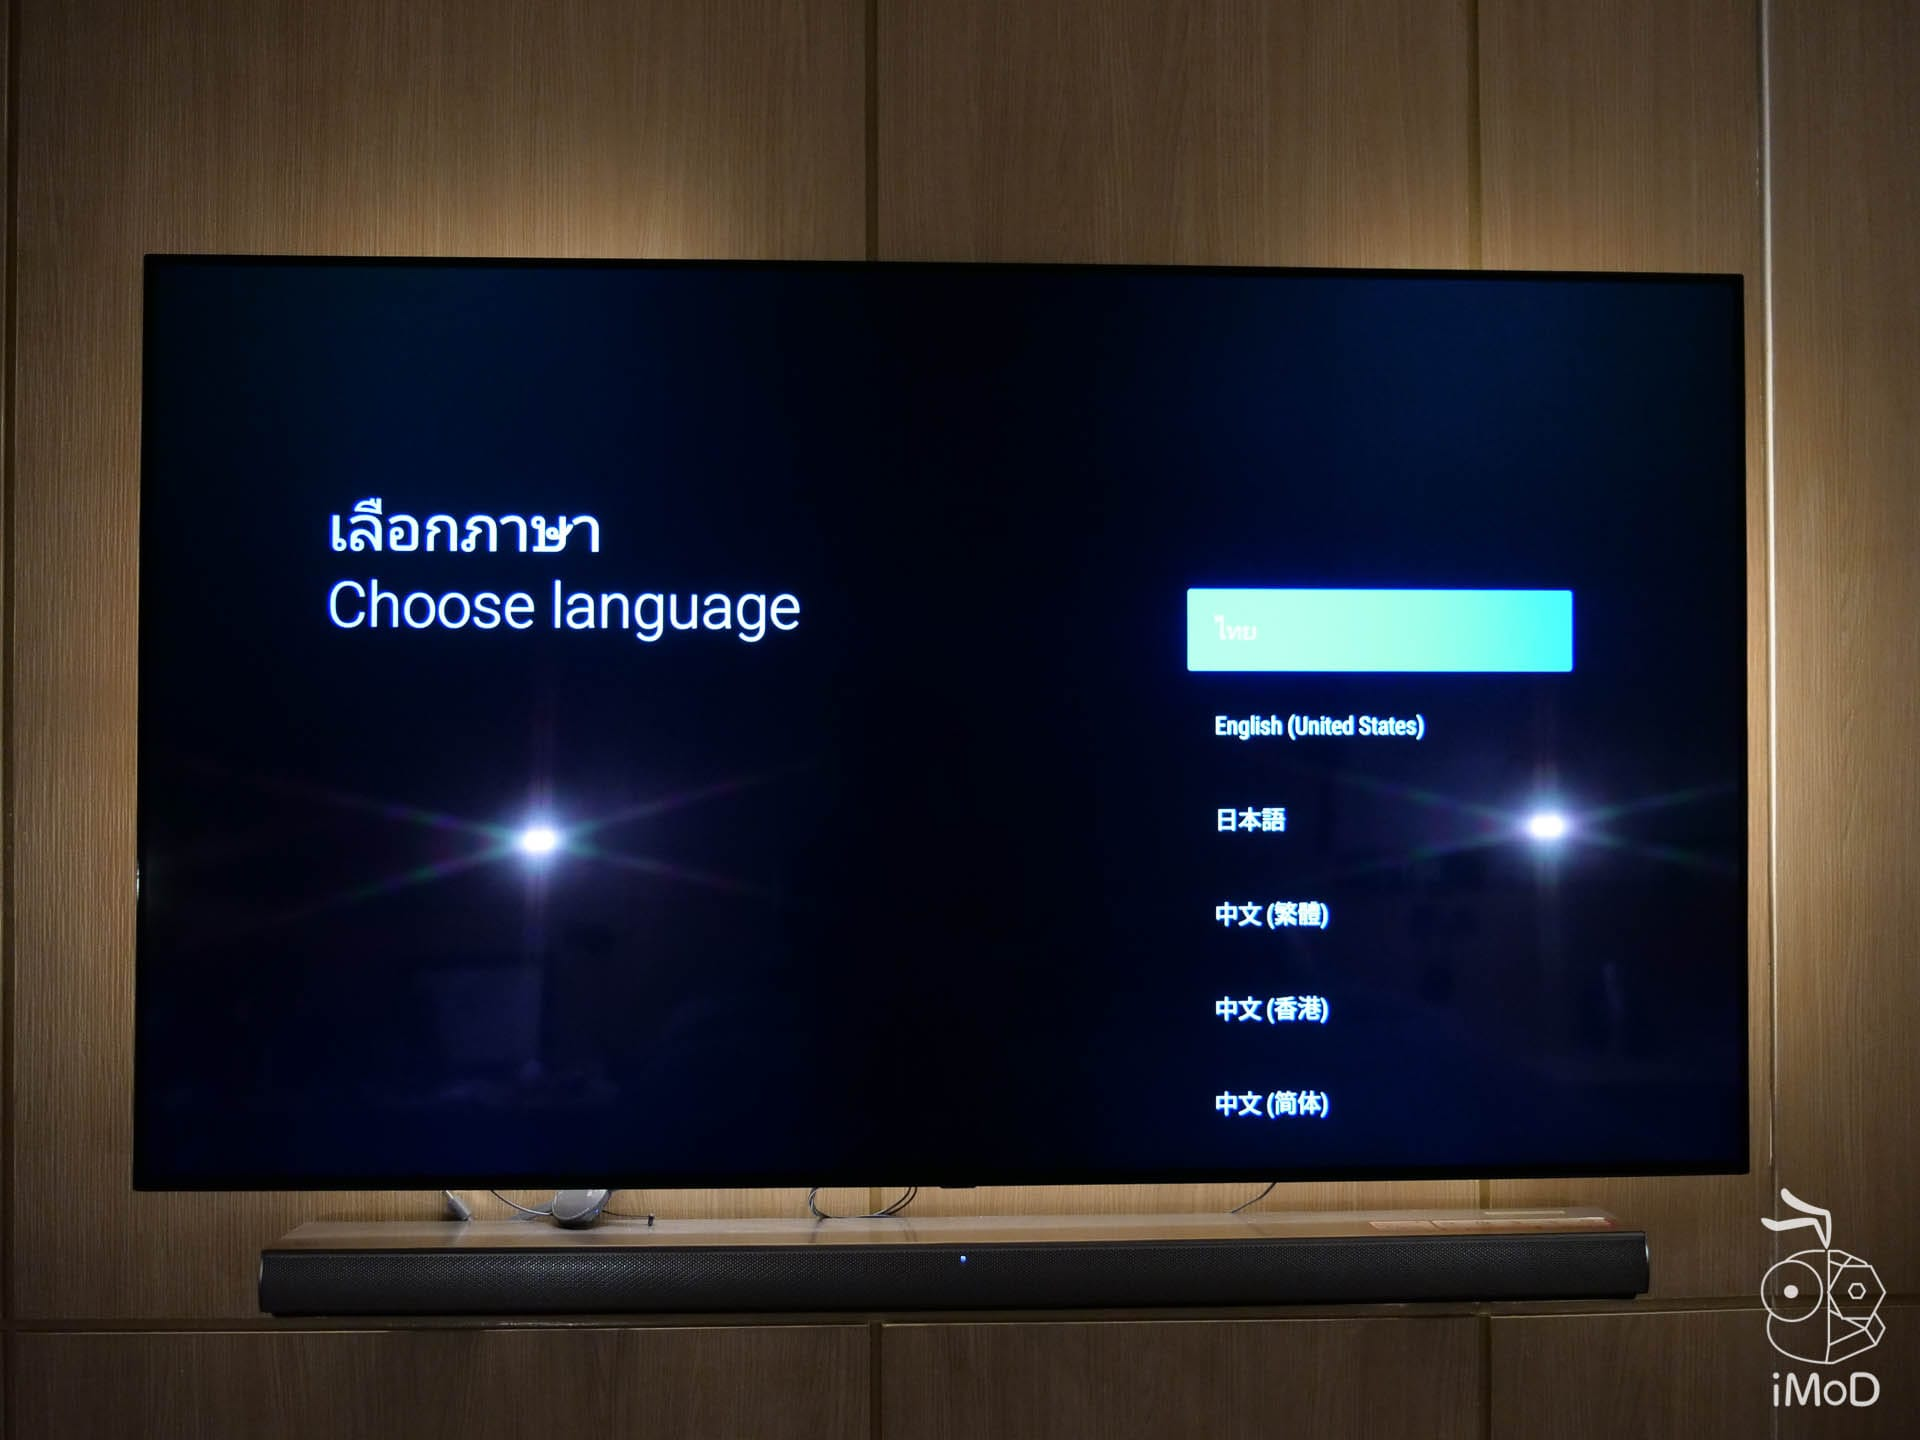 Trueid Tv กล่อง Android Tv รุ่น 2 Review 1222496